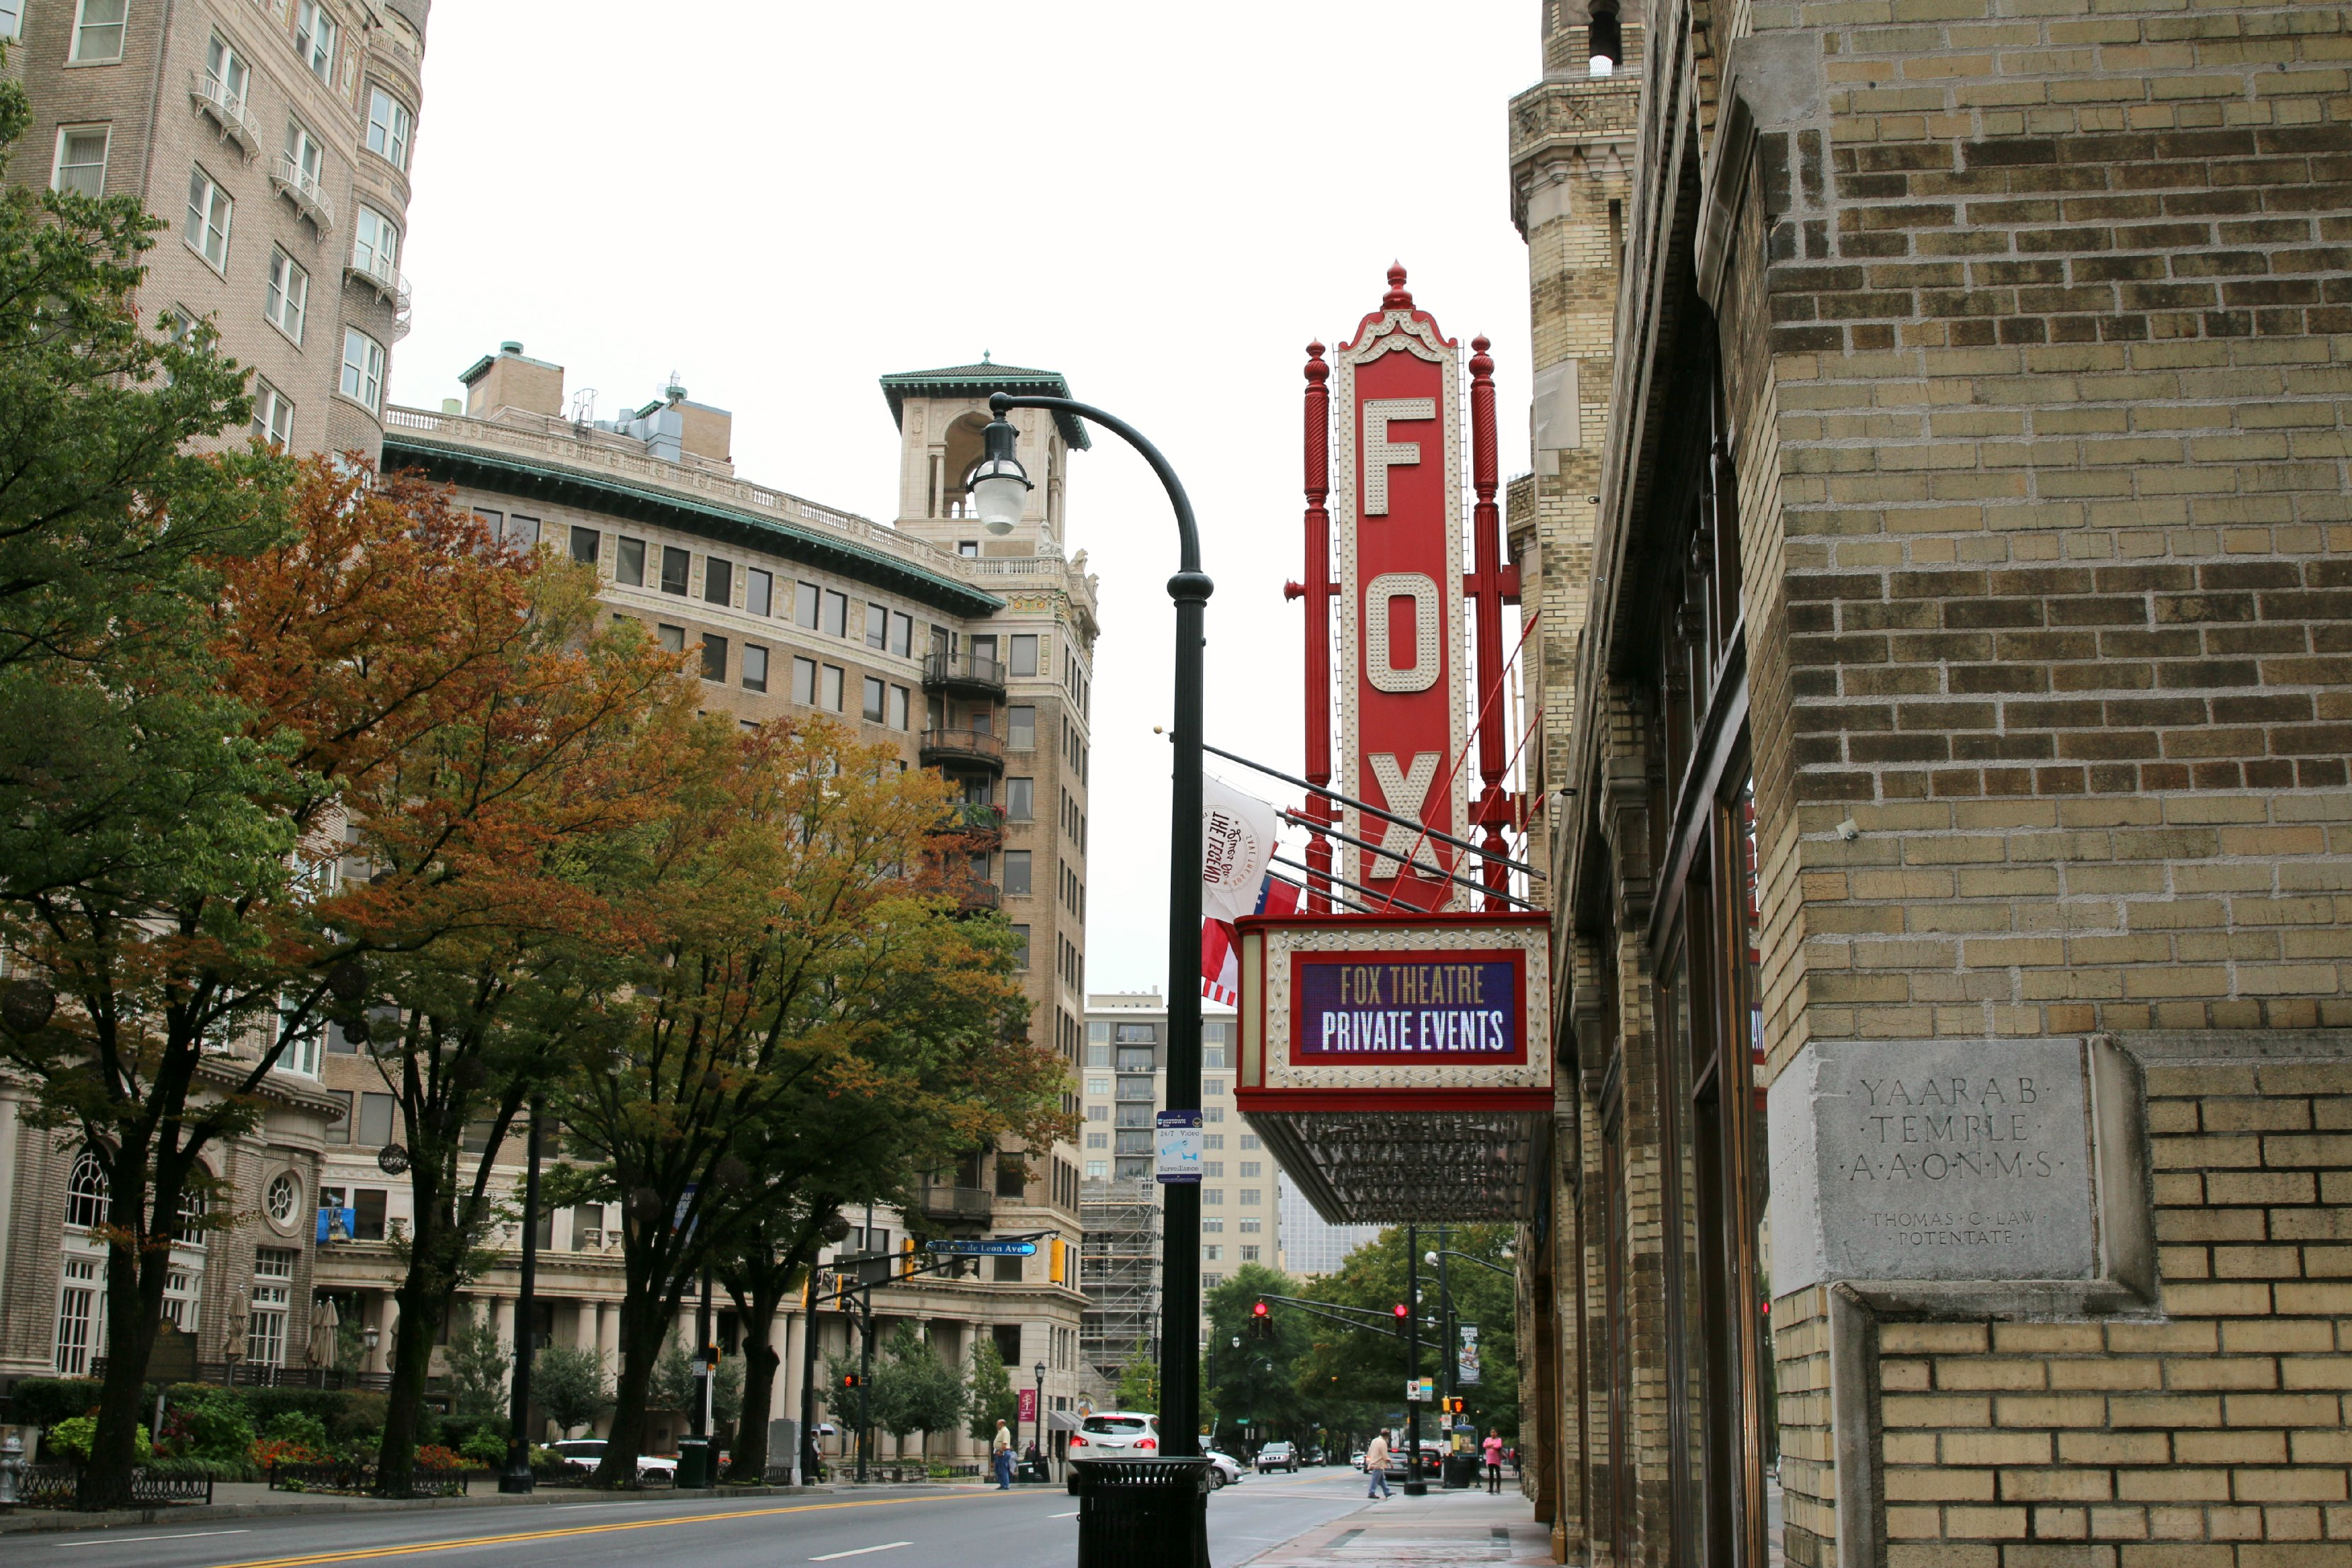 fox theater tour